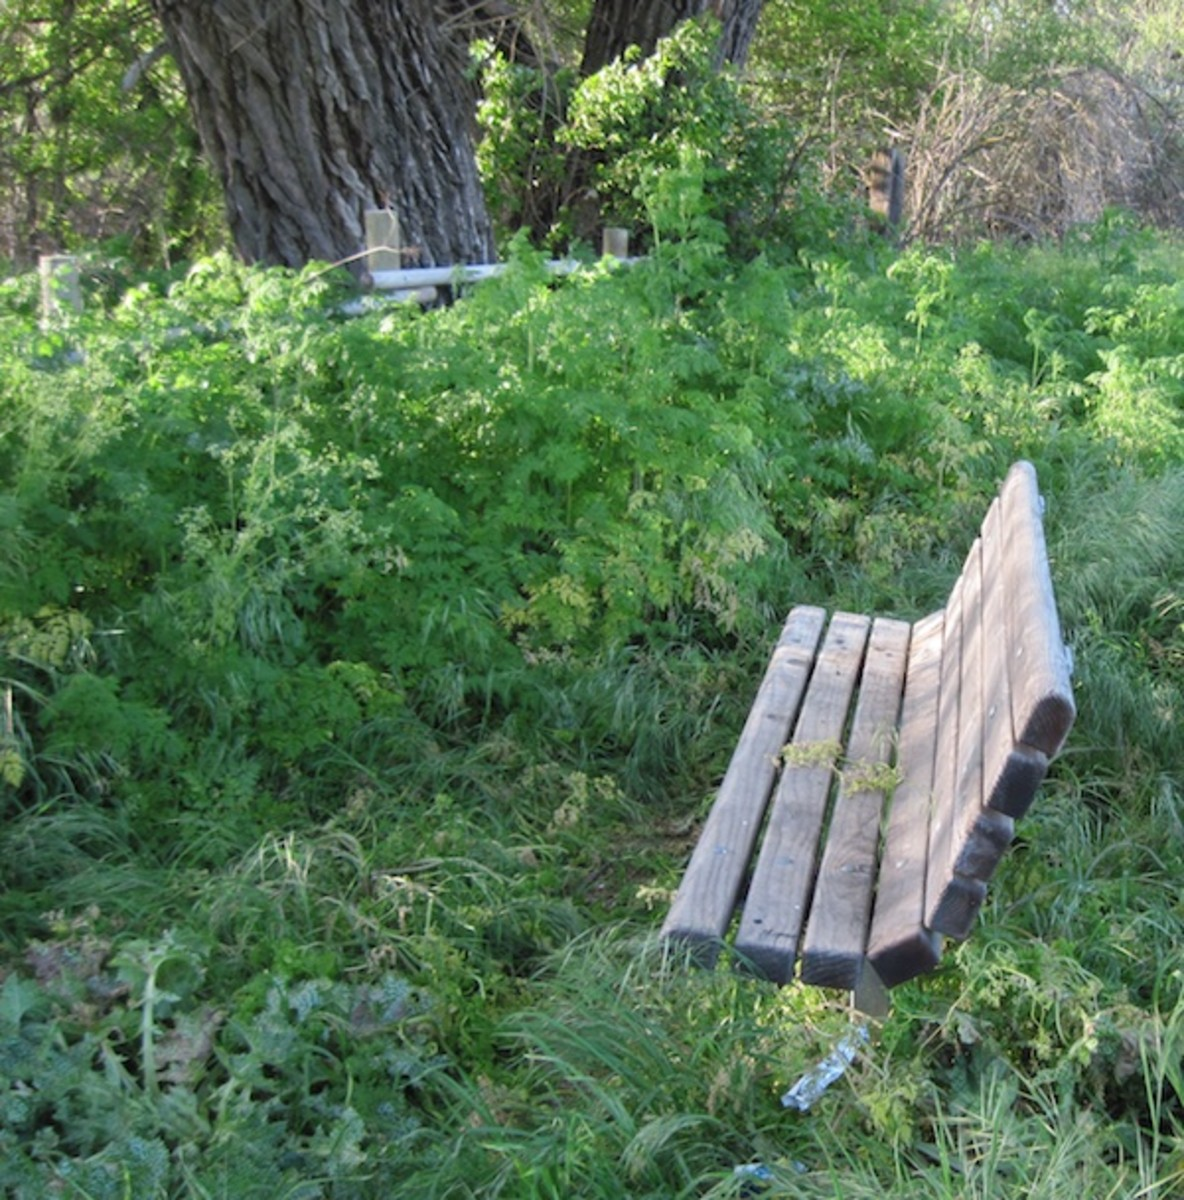 Taken at Lawrence Moore Park, Paso Robles. Here the fence-high poison hemlock, is preparing to grow even higher. Looks like someone might finally be spraying to get rid of it around the bench.